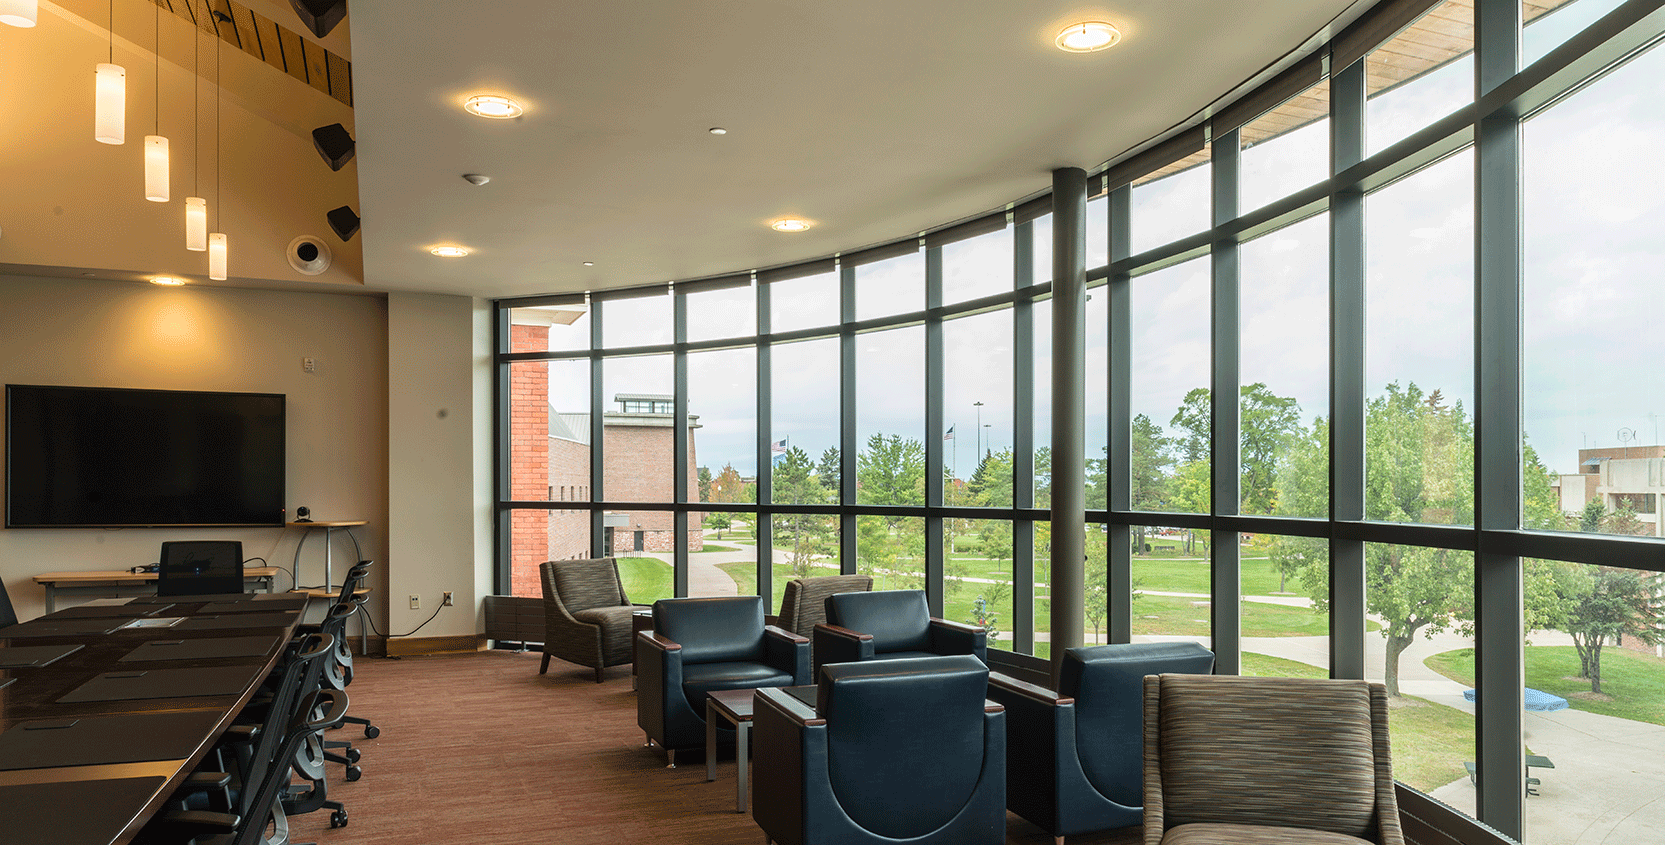 LSSU-South-Hall-Renovation-Conference-Room-1665x845